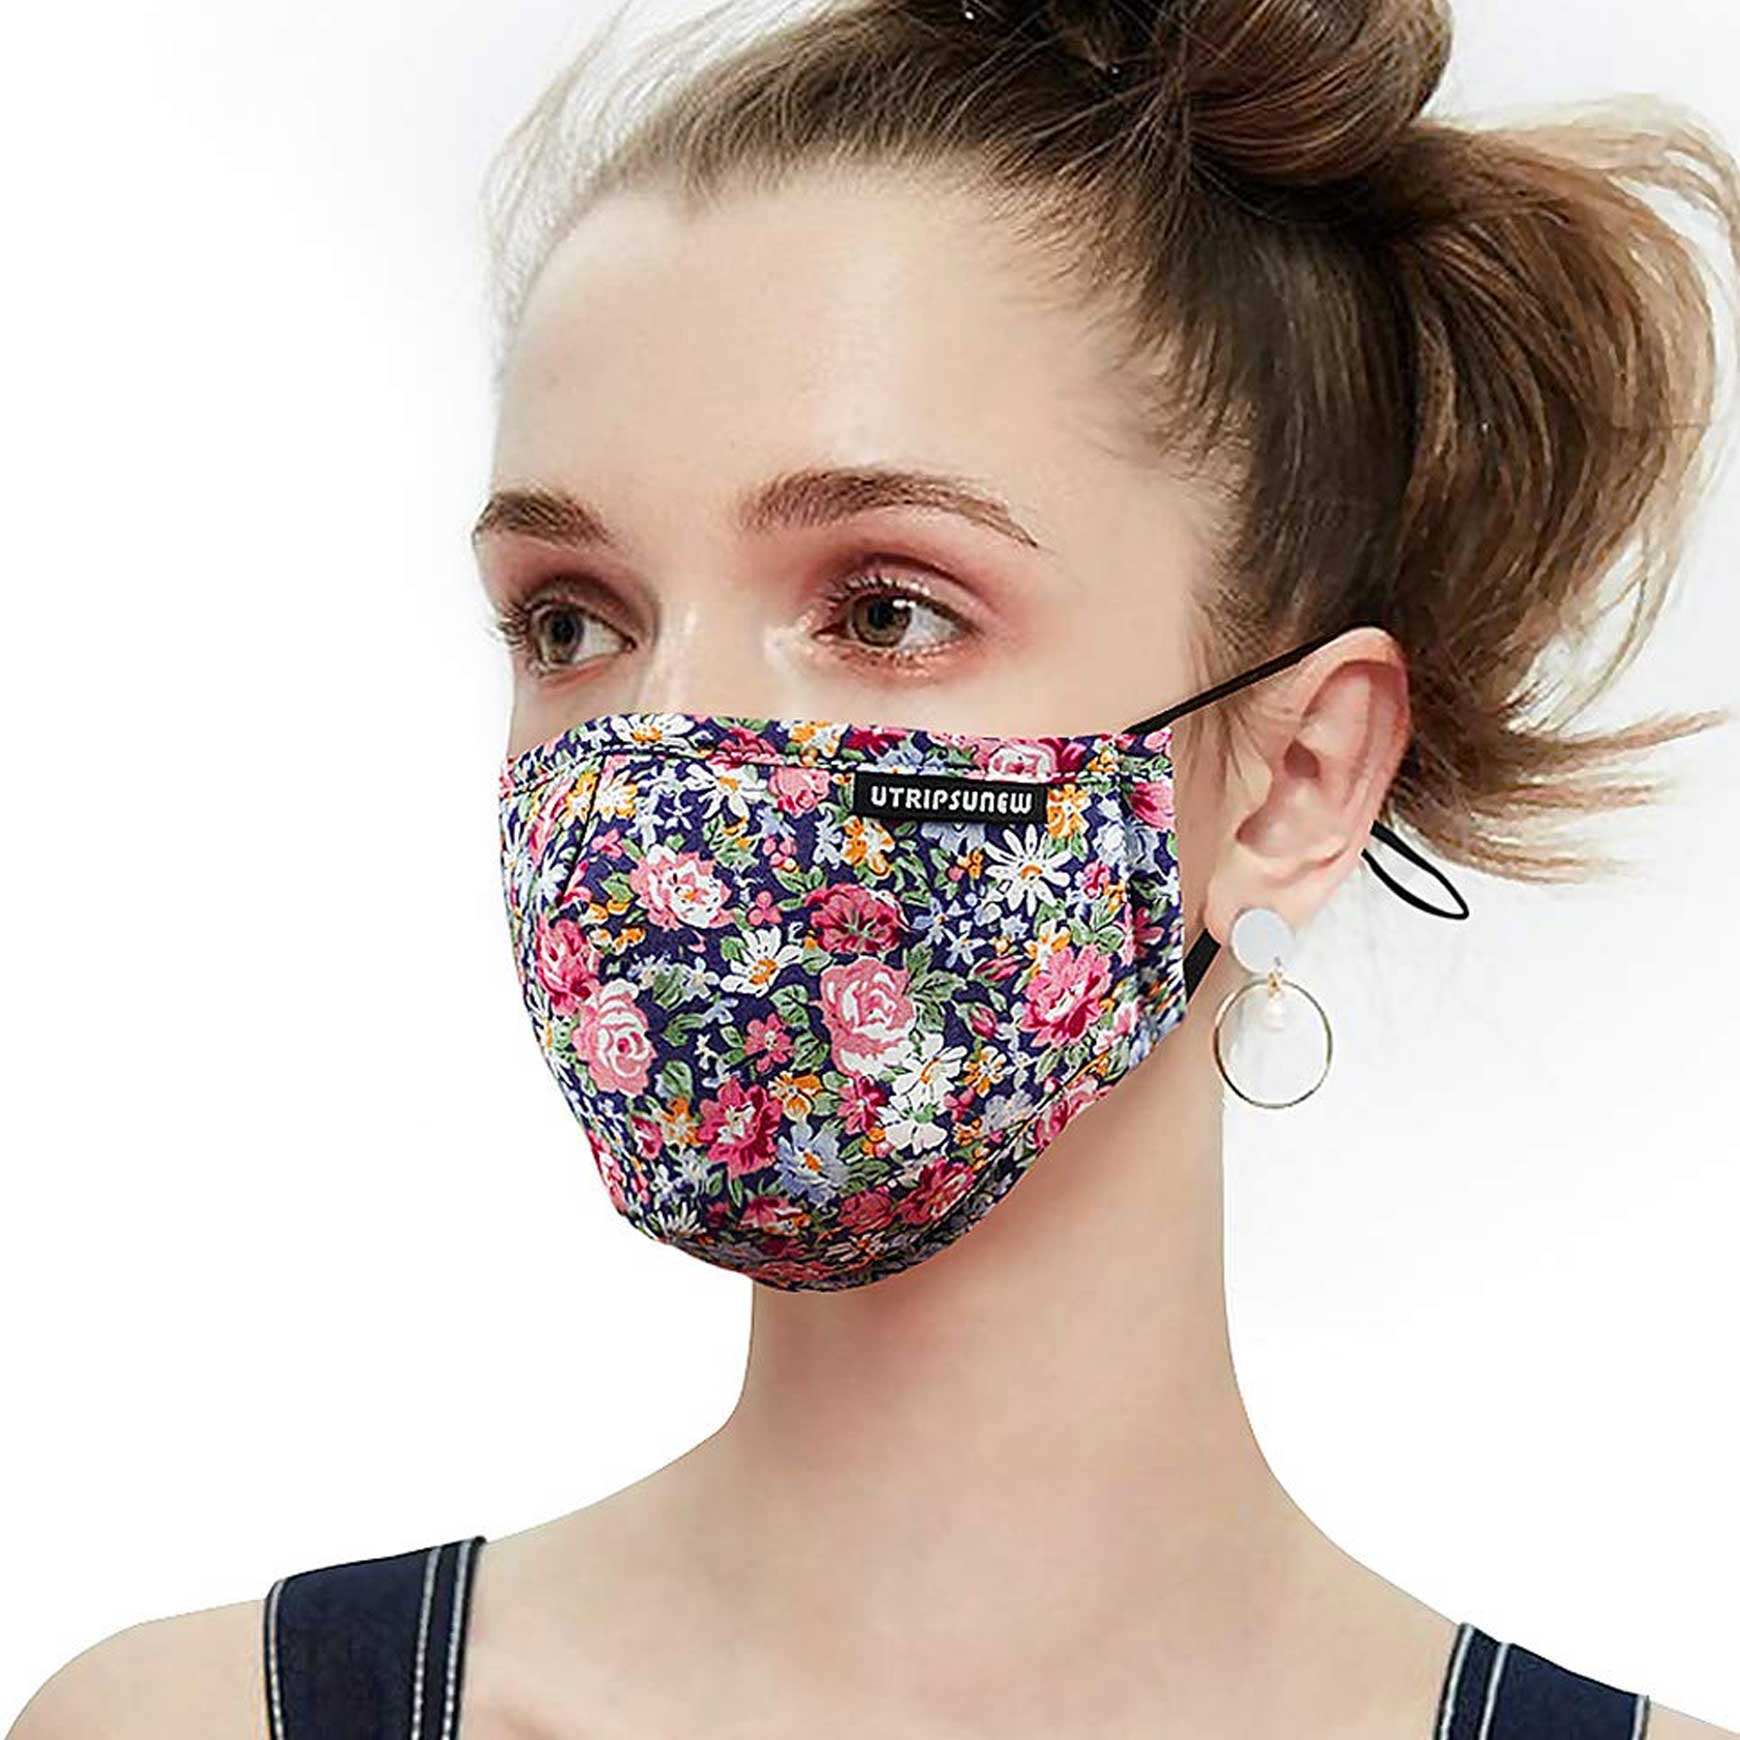 UTRIPSUNEW Anti Pollution Dust Mask Washable and Reusable